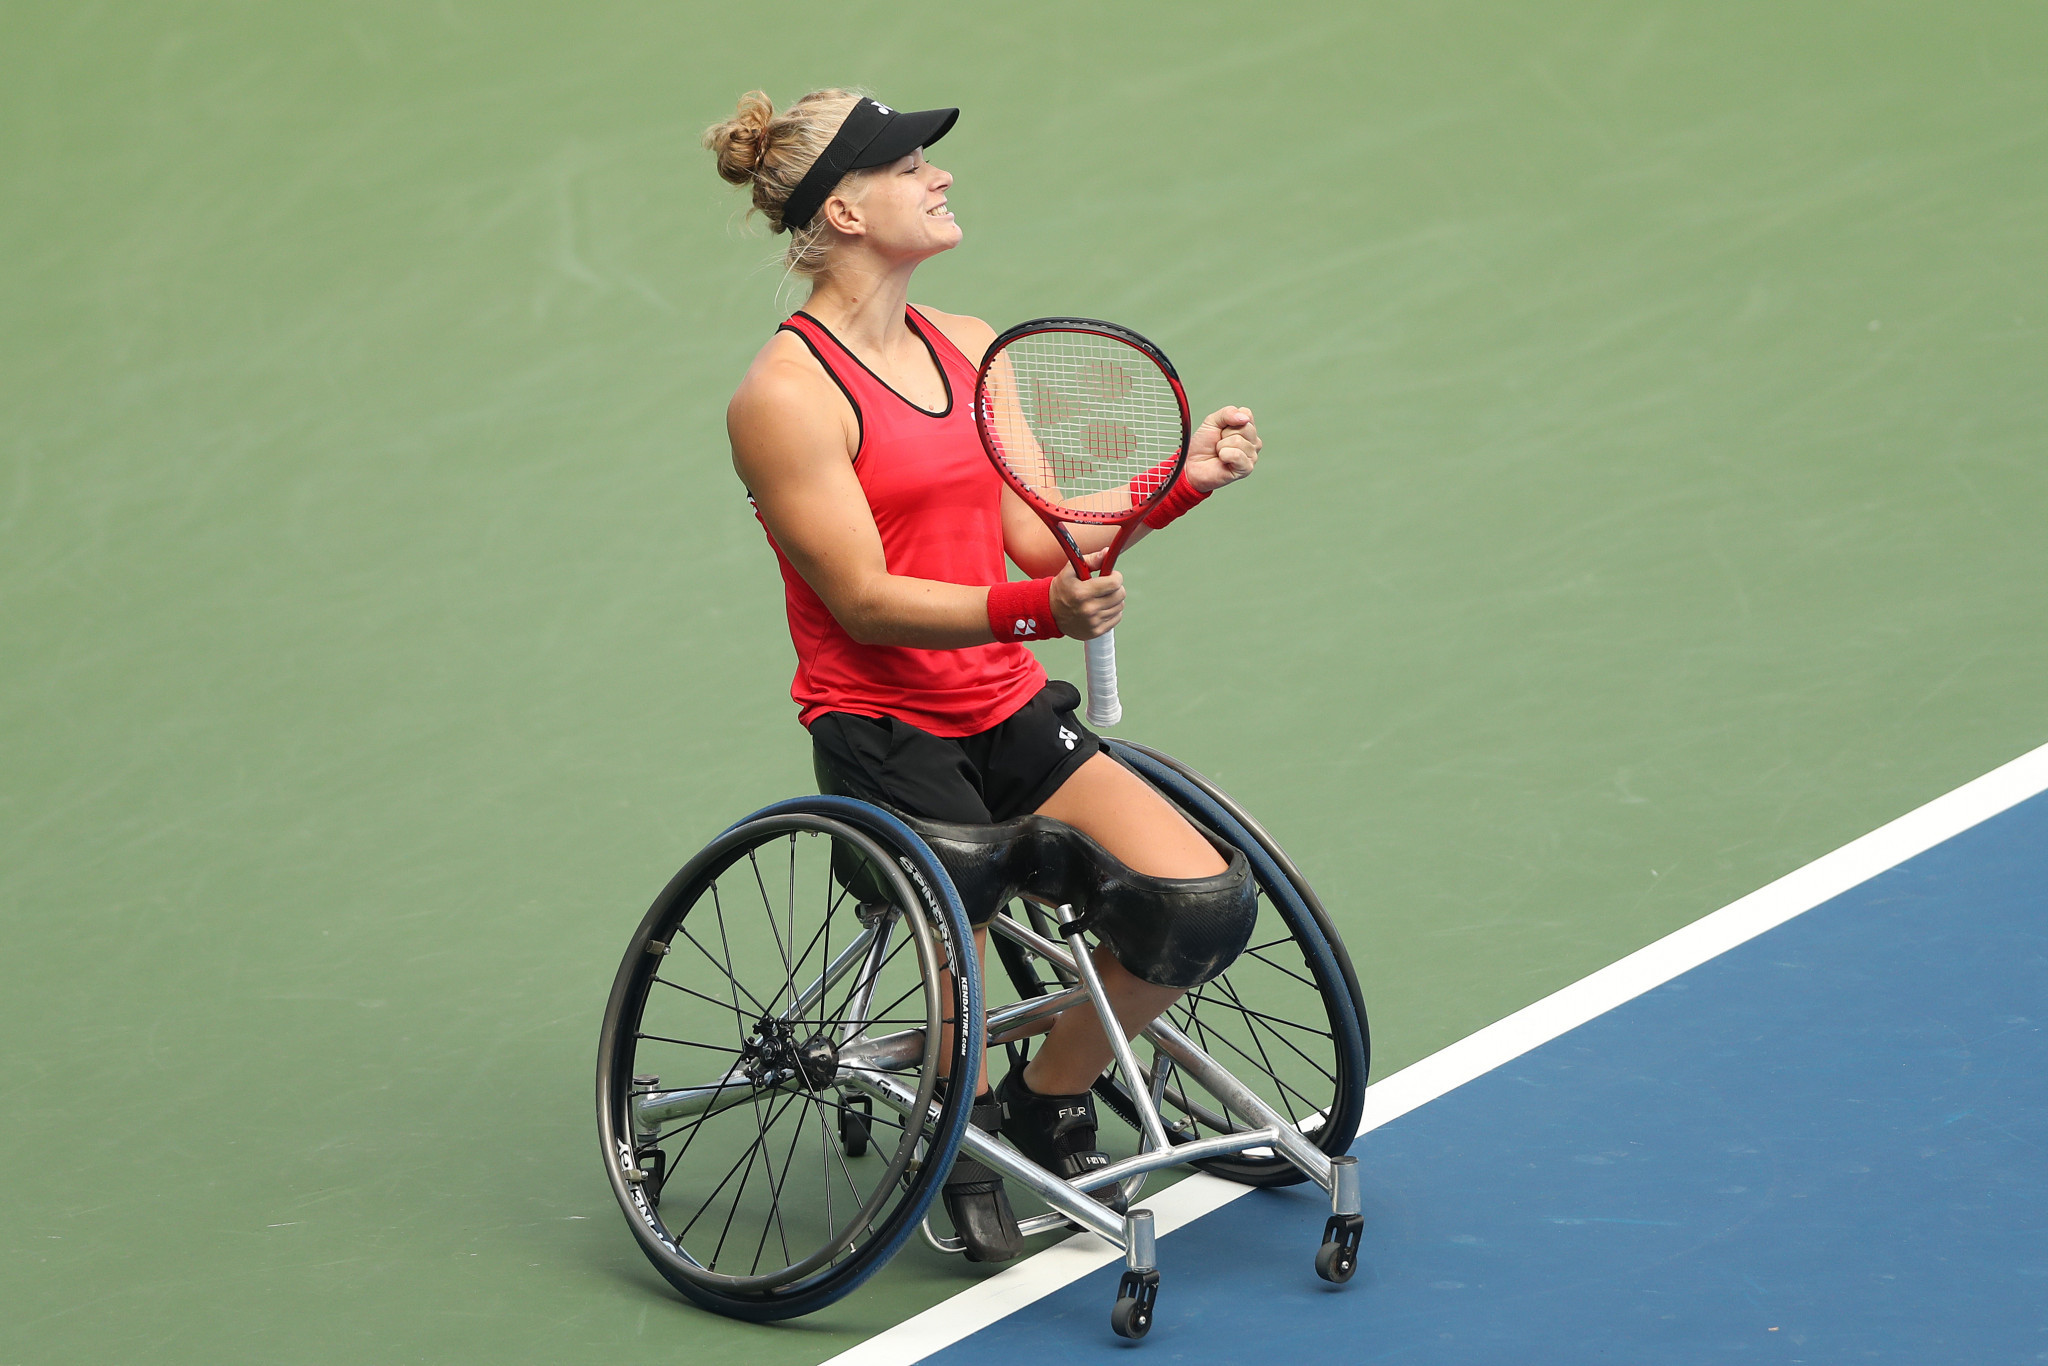 Women's top seed Diede de Groot of the Netherlands faces Britain's Jordanne Whiley in the first round of the French Open women's wheelchair singles competition ©Getty Images